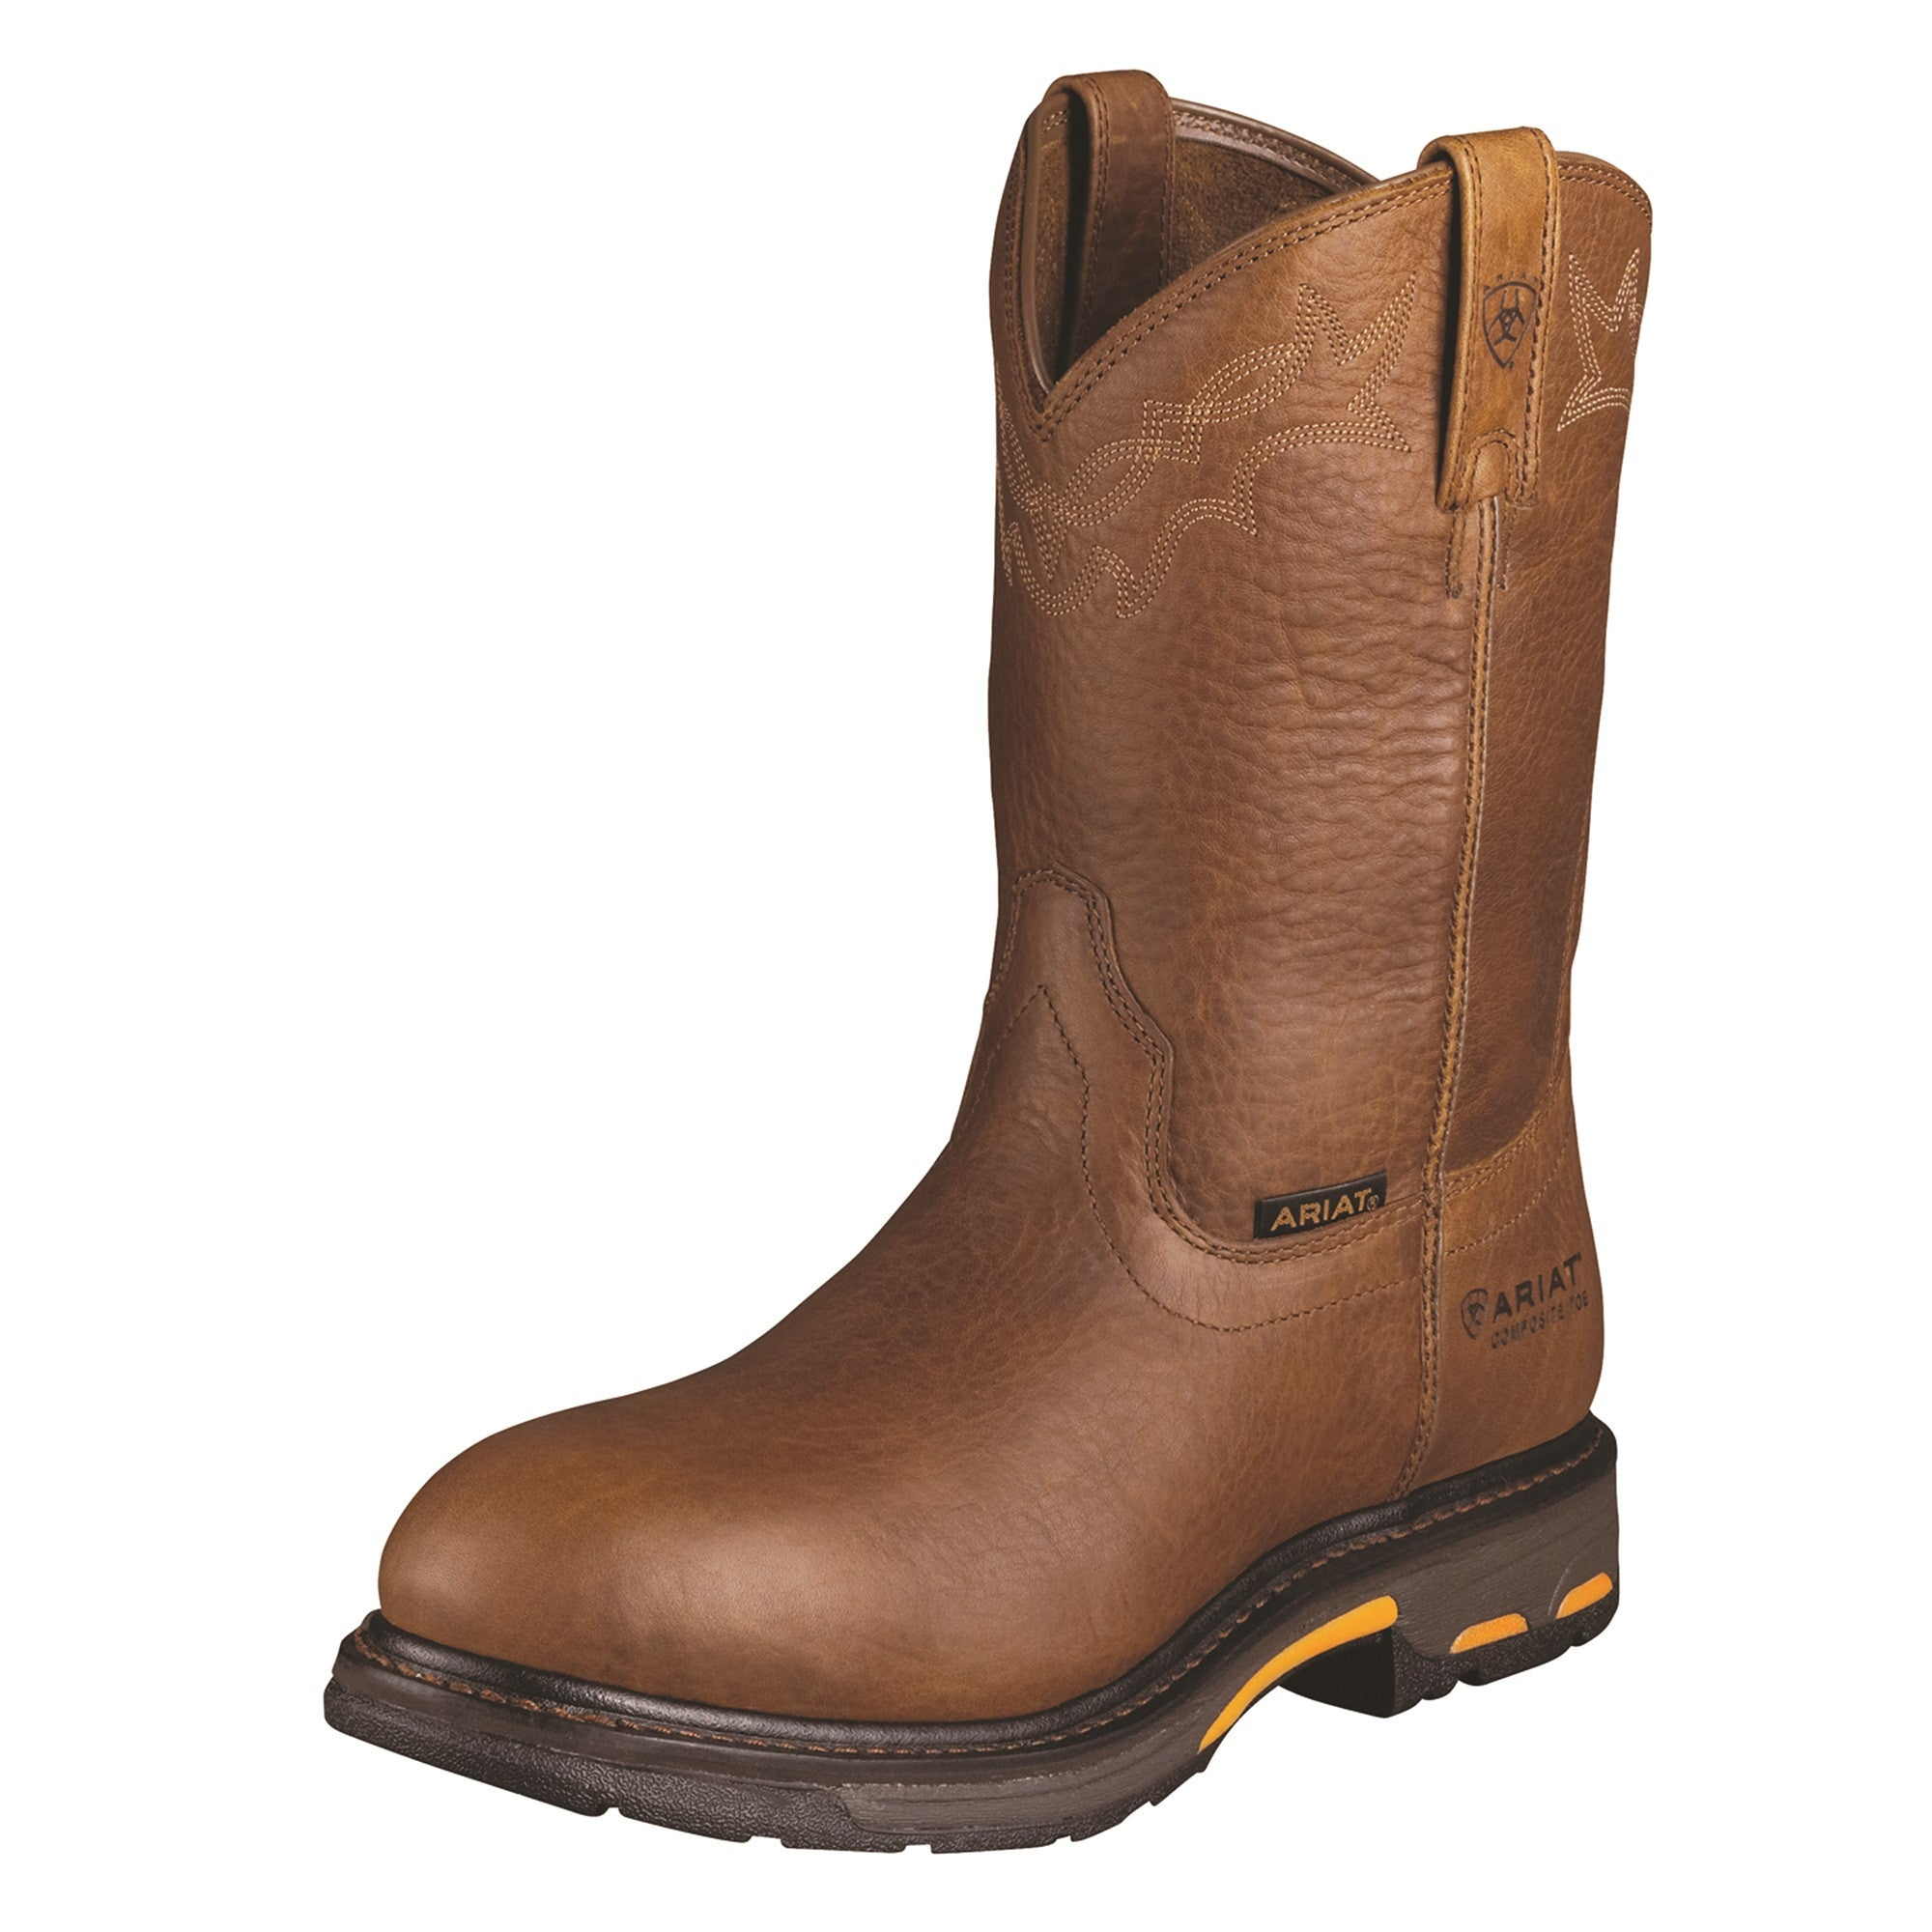 Men's Ariat WorkHog Composite Toe Work Boot #10001186-C